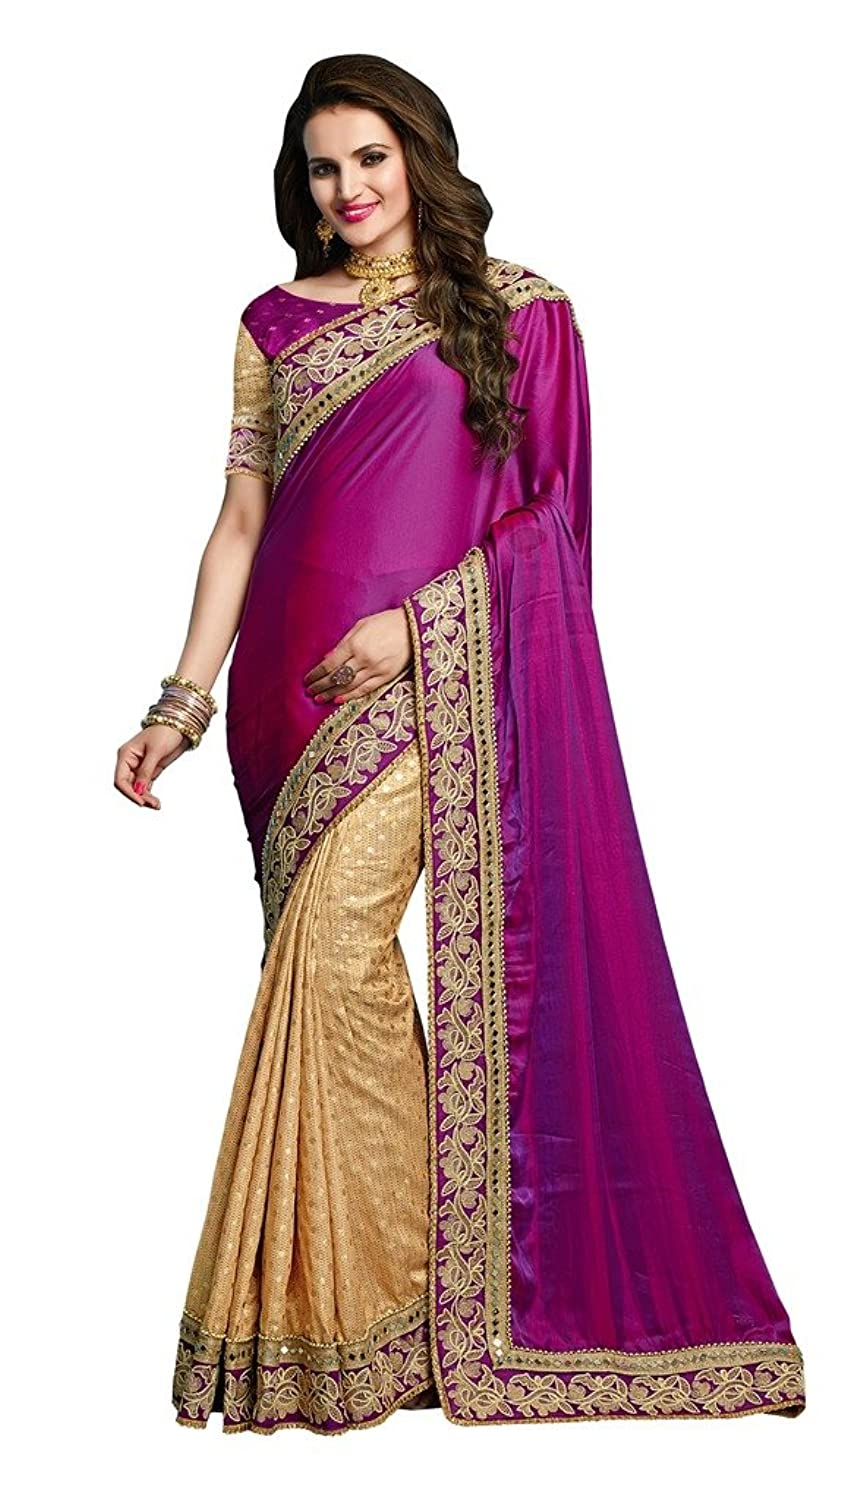 EthnicWear Elegant Party Sangeet Women Wear Purple Silk Sarees Saris